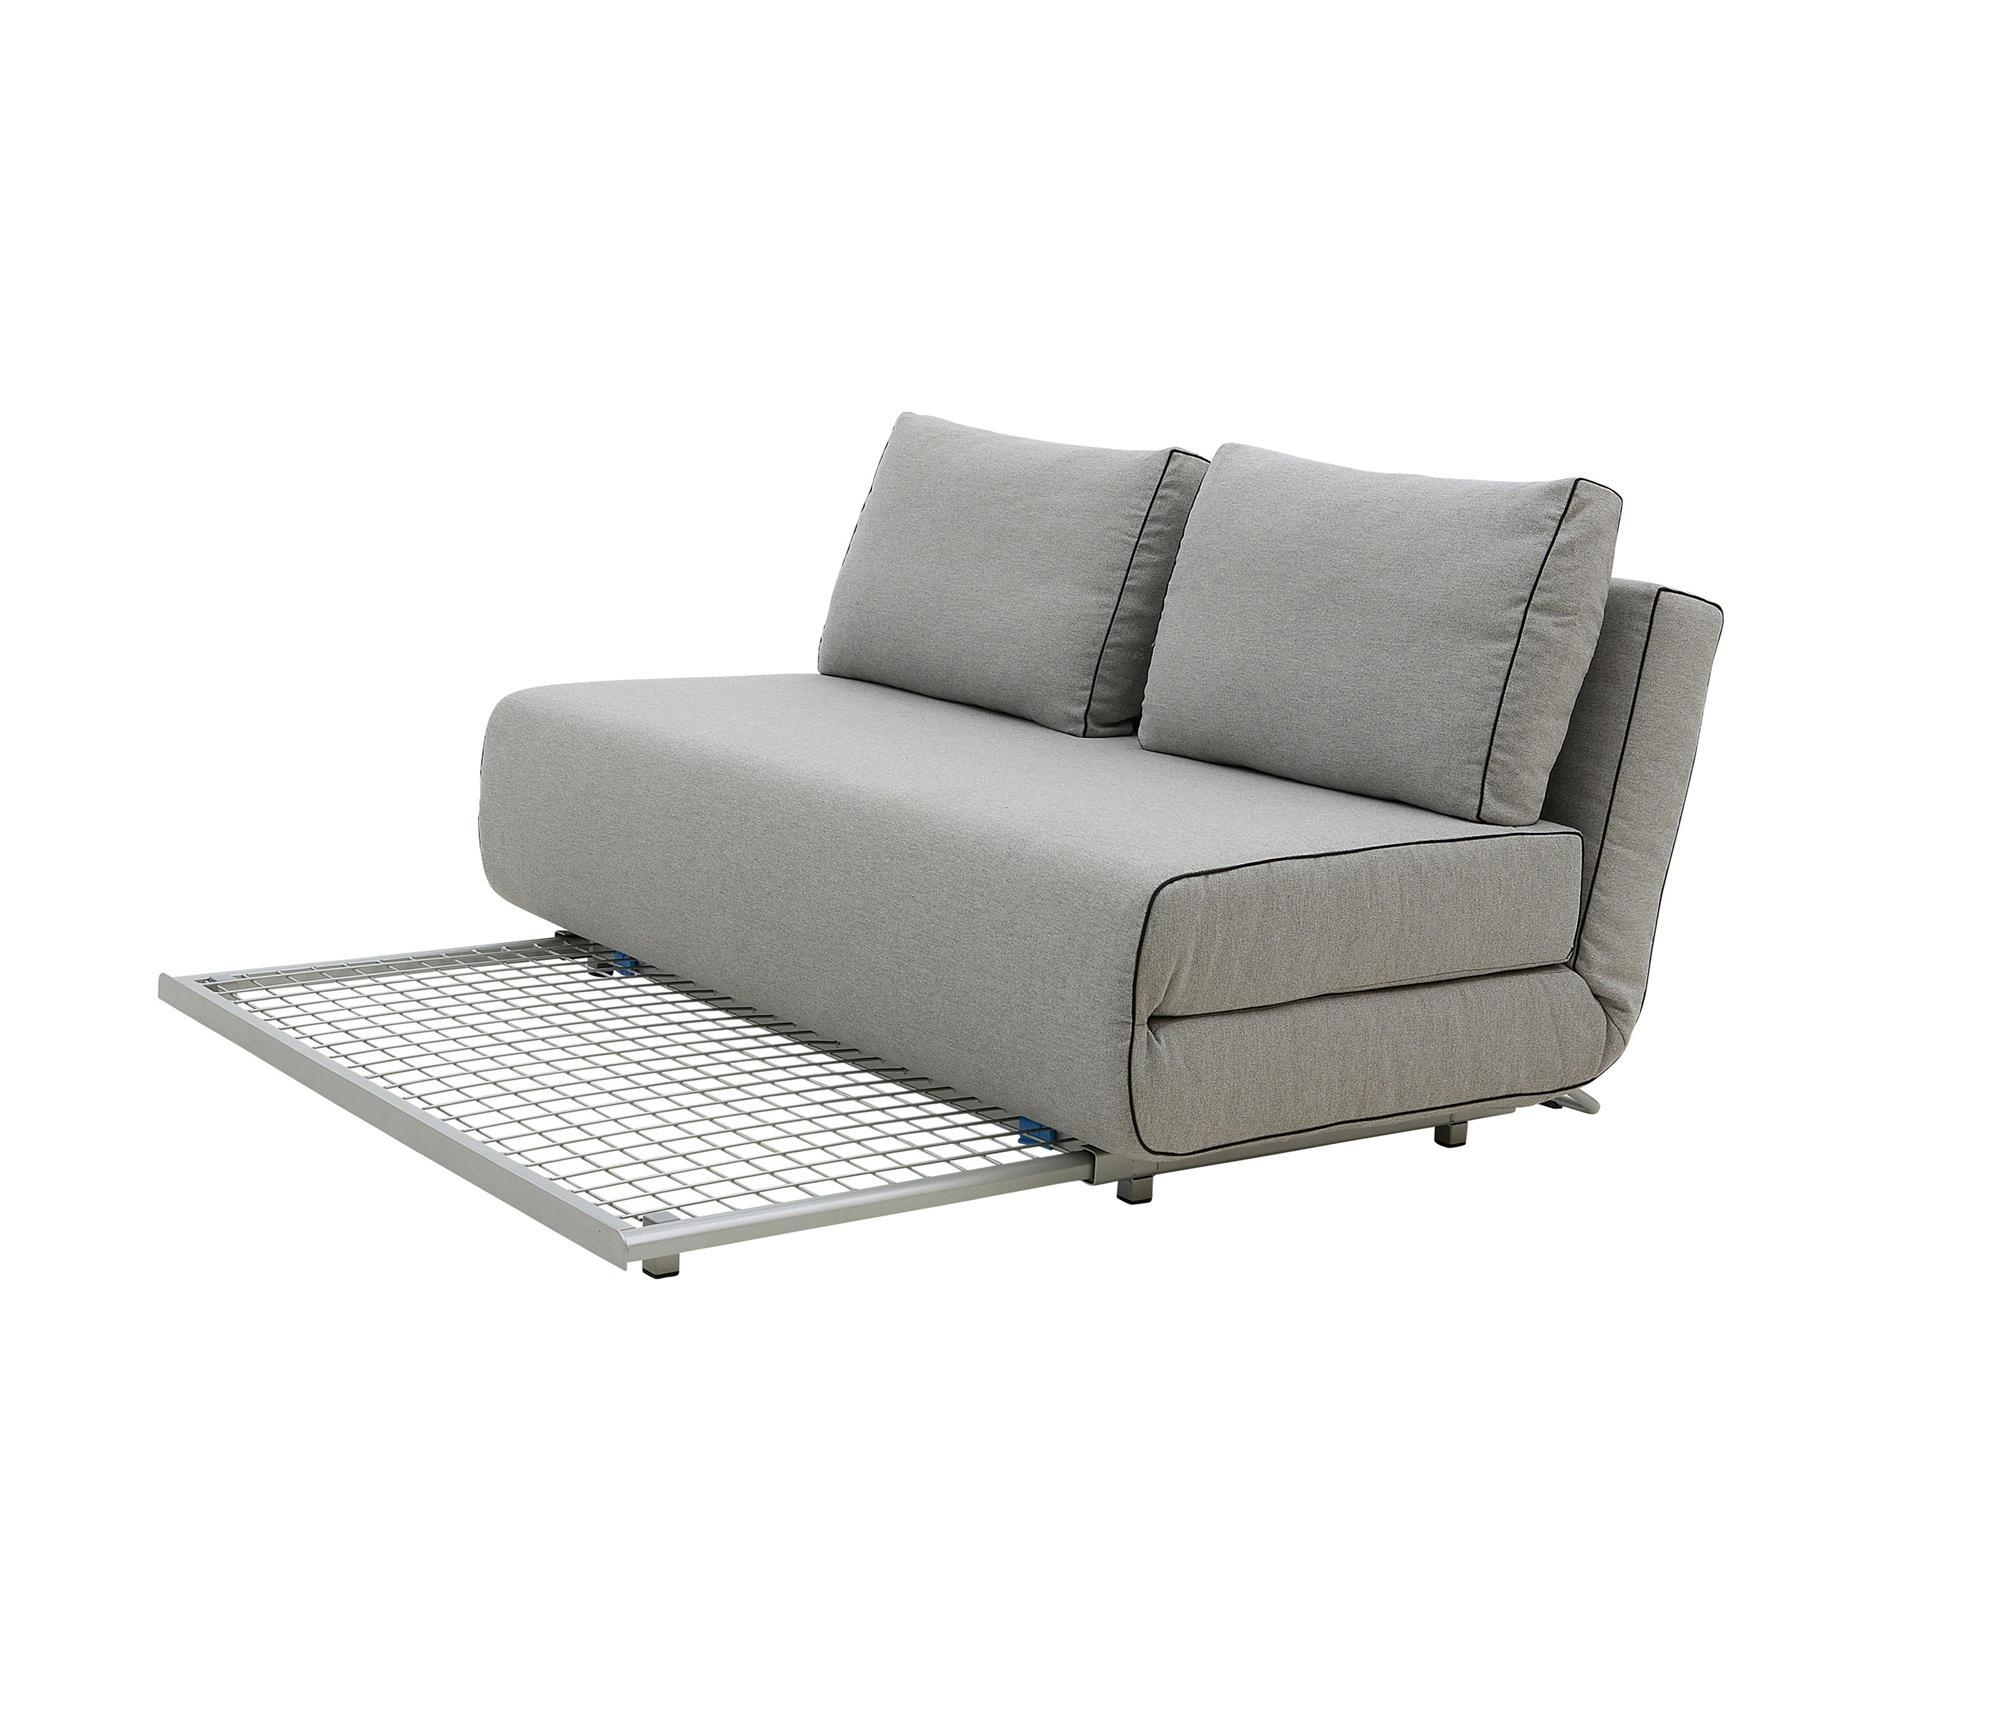 City Sofa – Sofa Beds From Softline A/s | Architonic Intended For City Sofa Beds (Image 4 of 20)